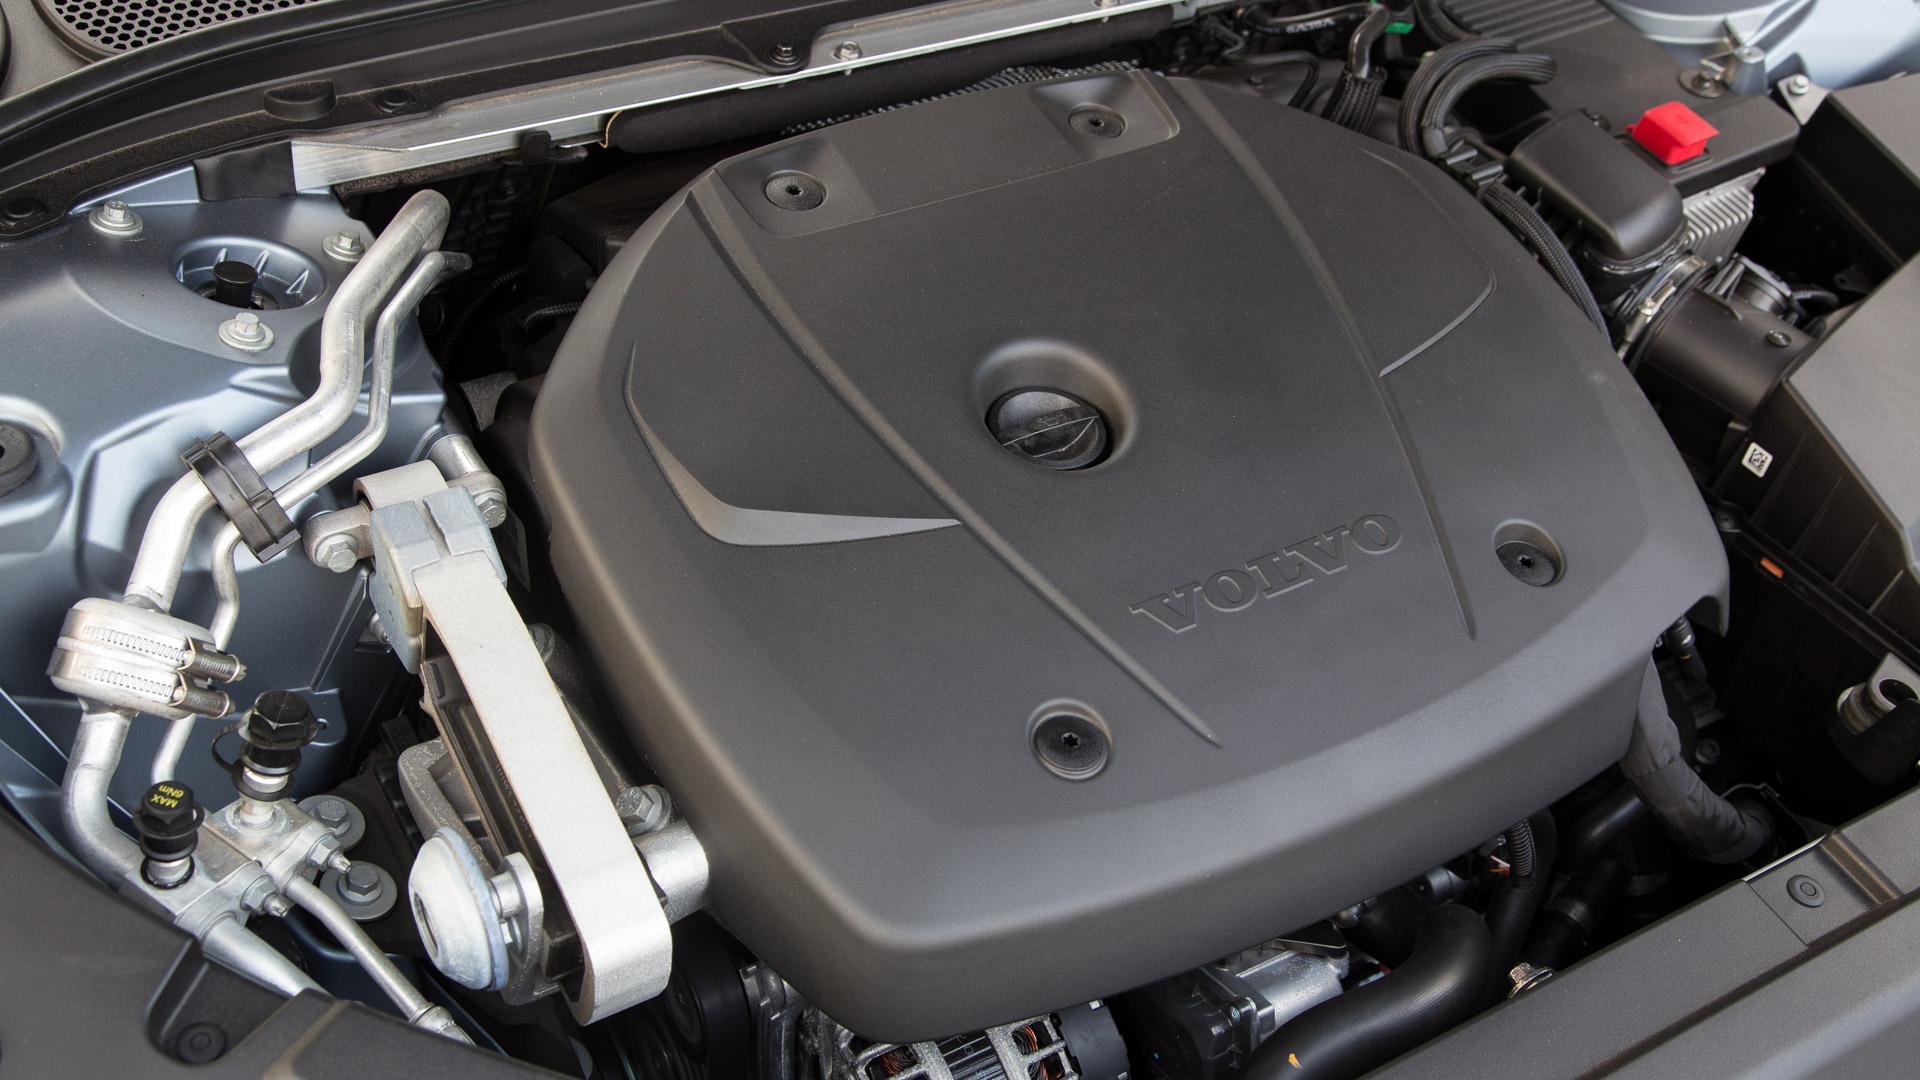 Small Turbo Engines Get Good Mpg Ratings Real World Use May Be A Diffe Story